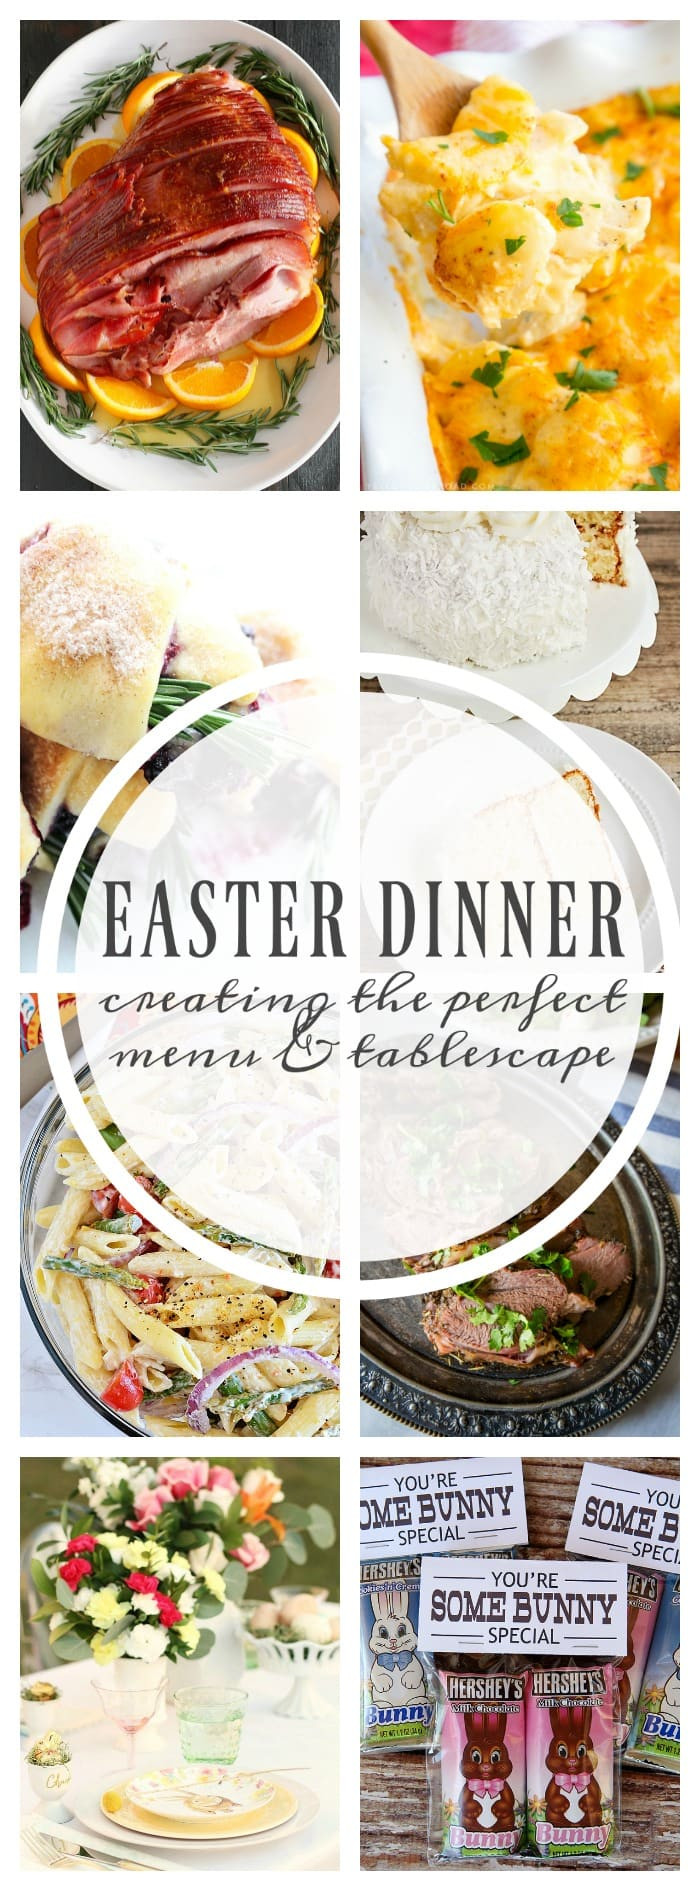 Perfect Easter Dinner Menu  EASTER DINNER CREATING THE PERFECT MENU & TABLESCAPE A